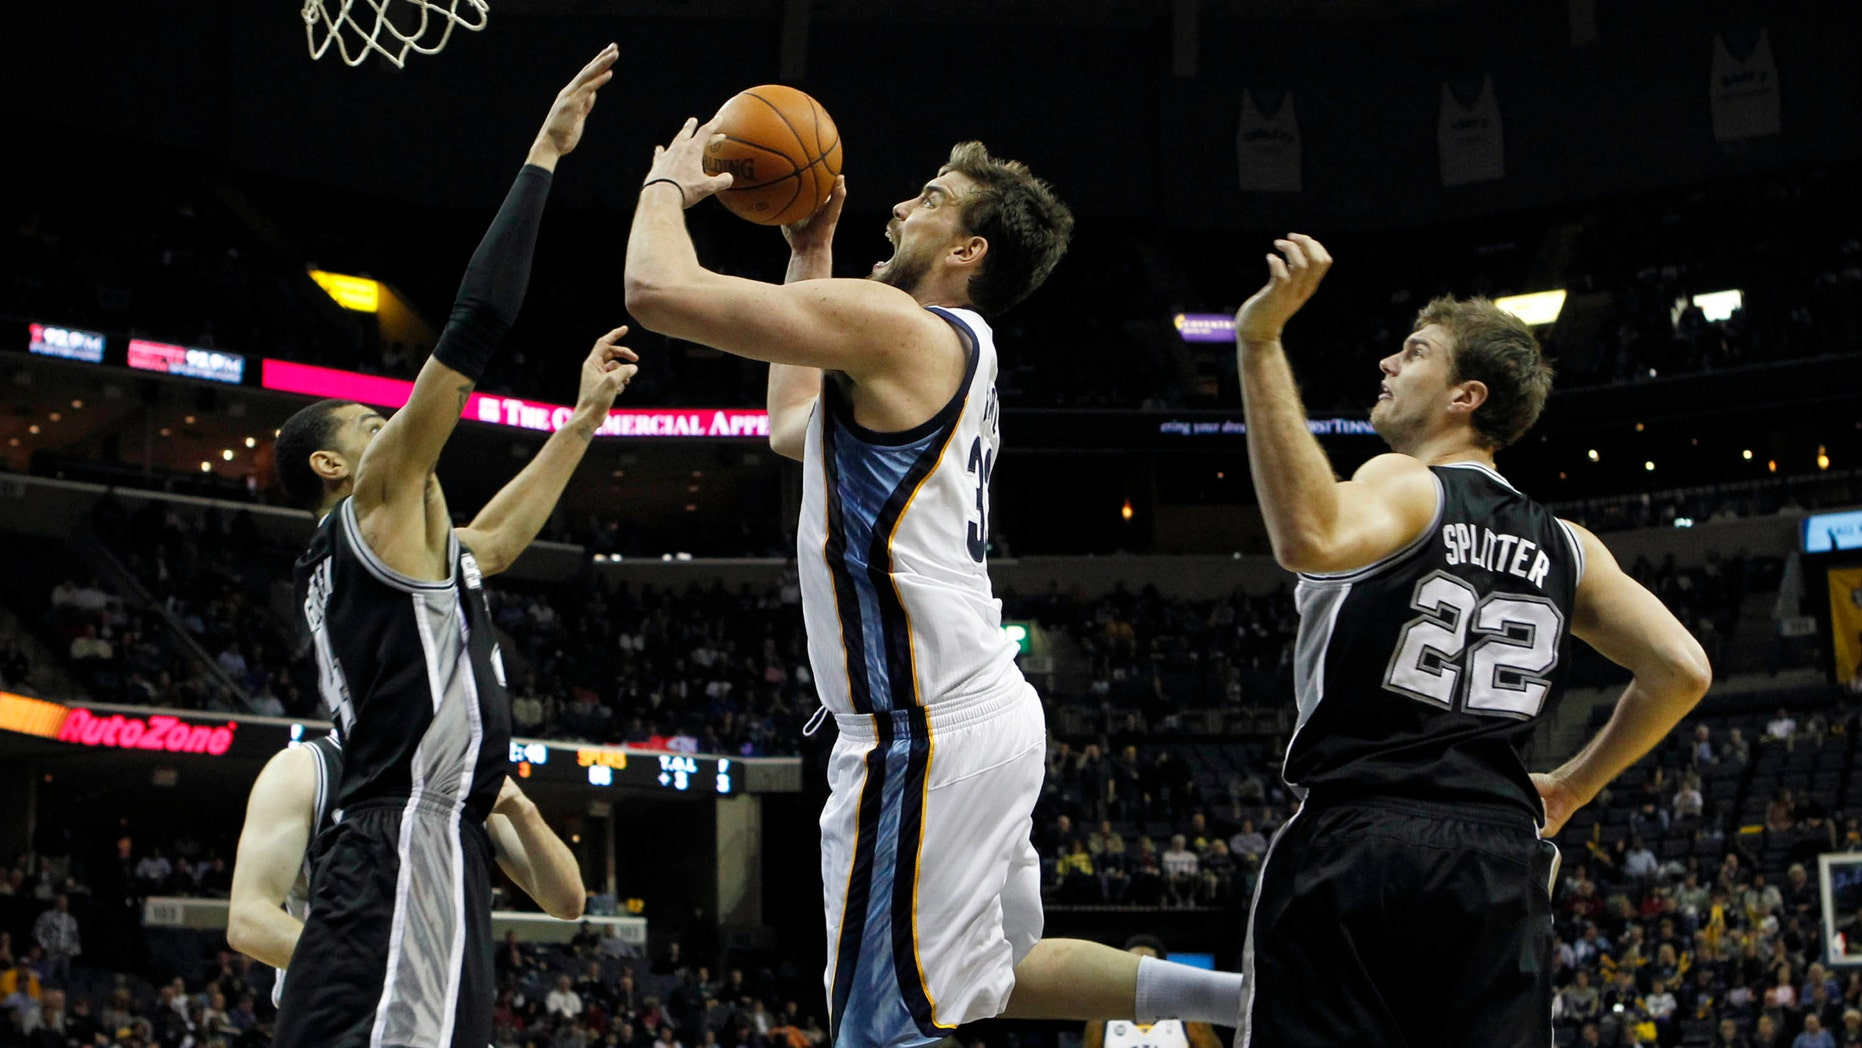 Memphis Grizzlies center Marc Gasol, of Spain, (33) shoots under pressure by San Antonio Spurs forward Danny Green (4) in the second half of an NBA basketball game on Monday, Feb. 6, 2012, in Memphis, Tenn. (AP Photo/Jim Weber)